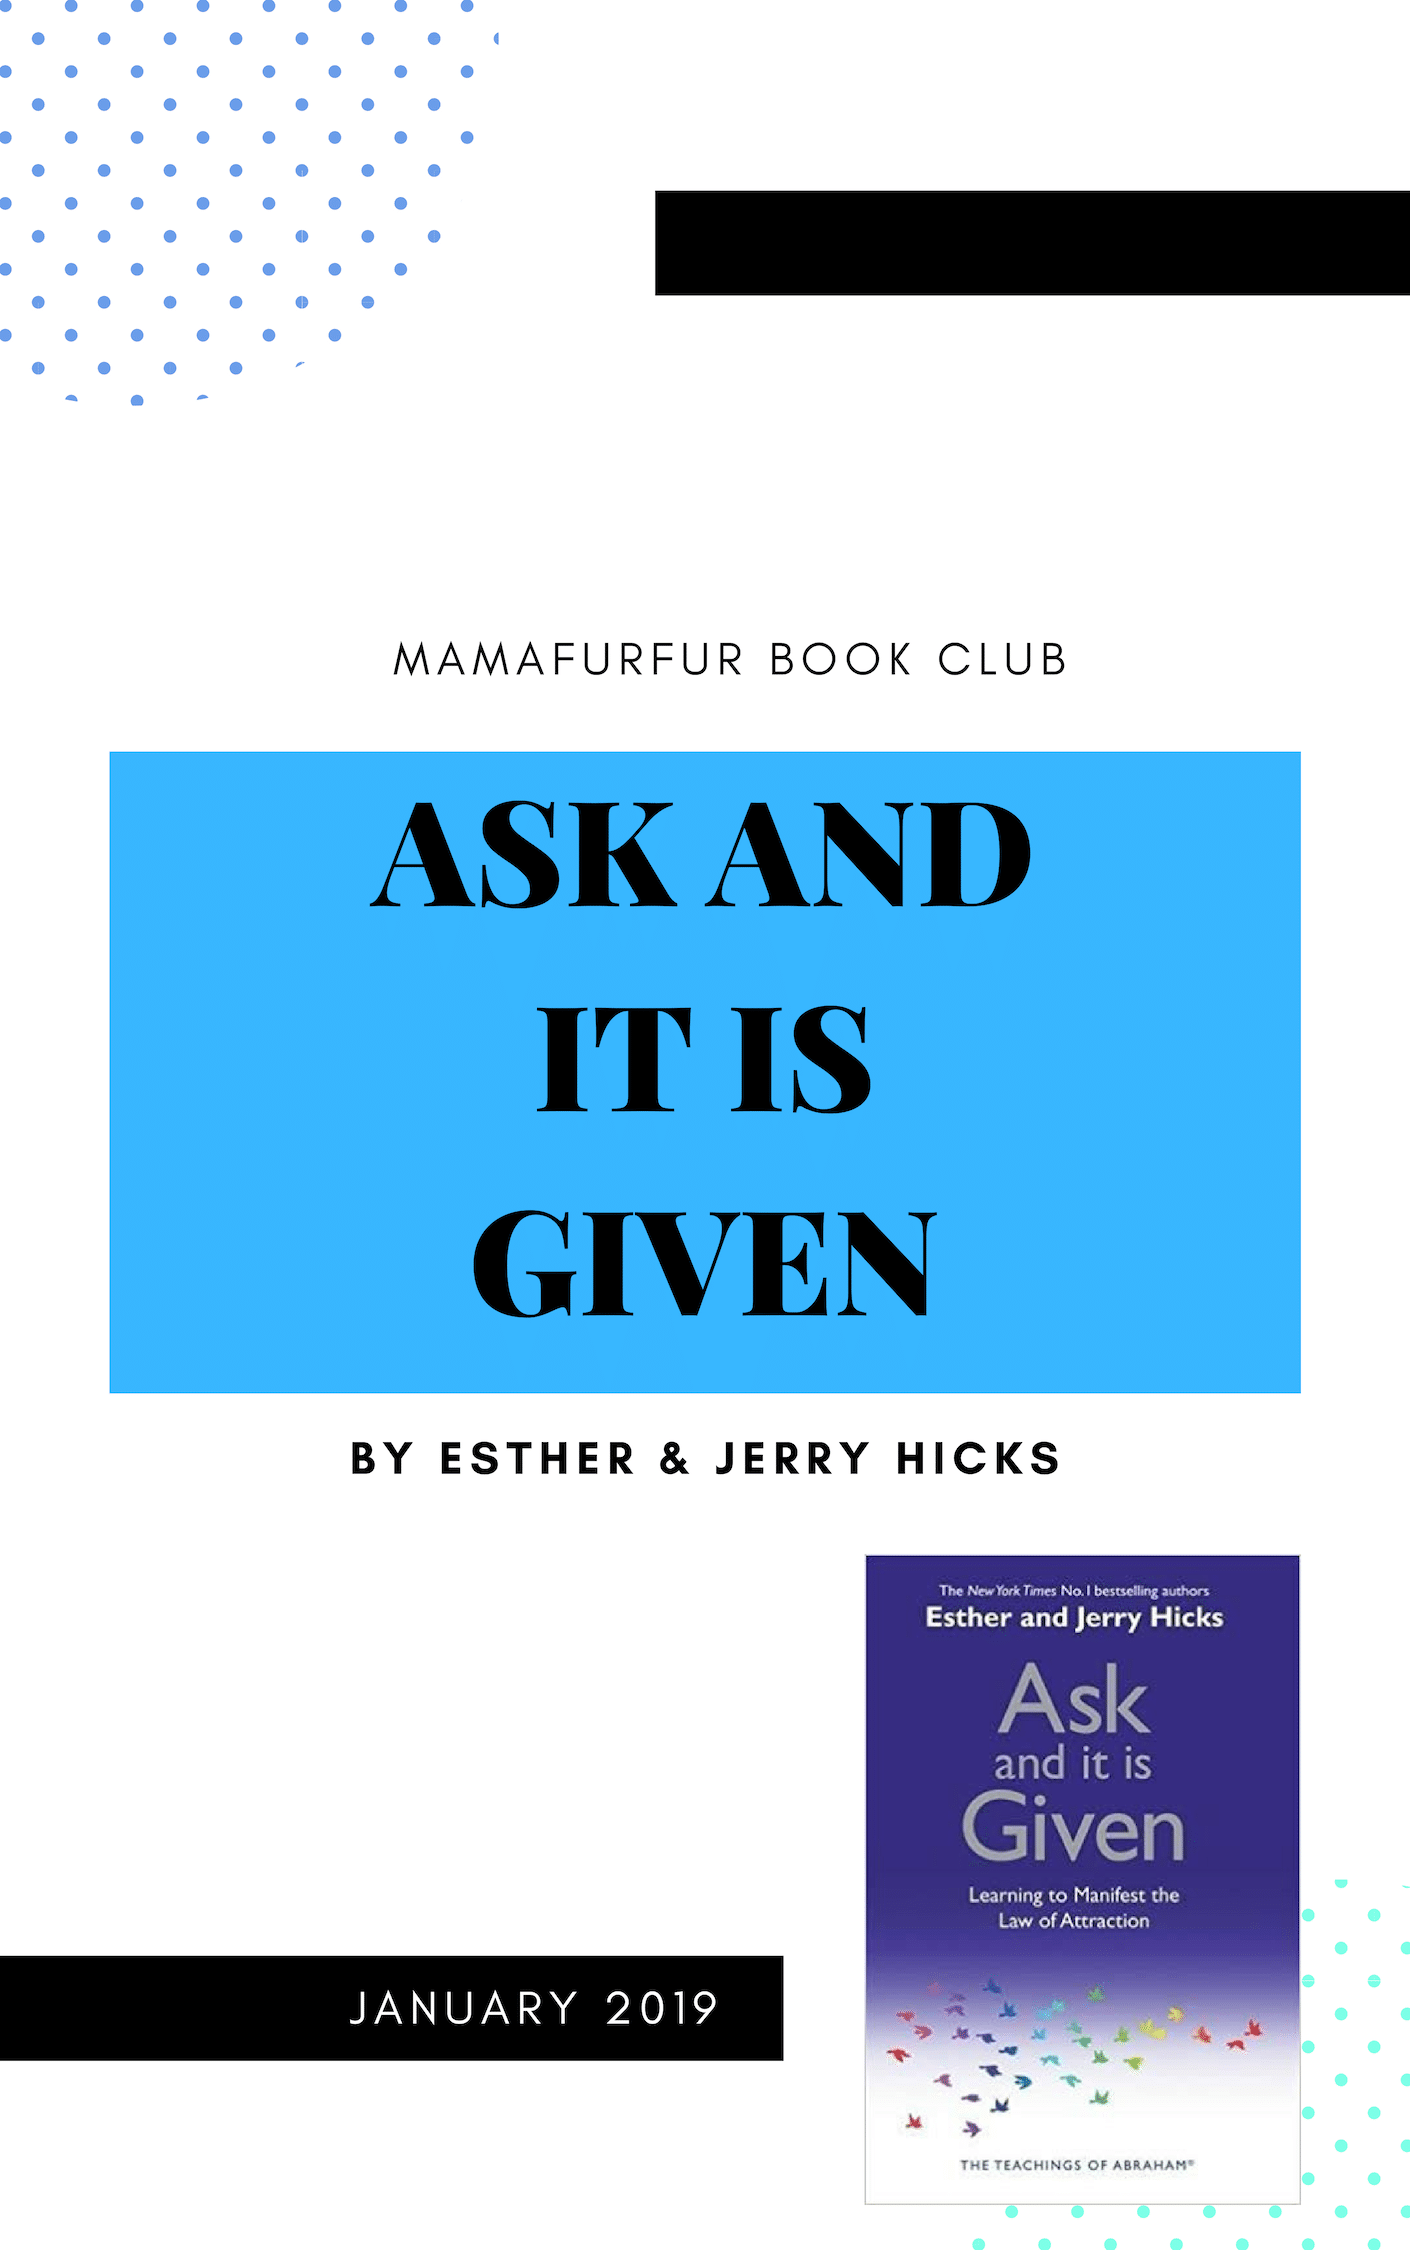 January 2019 Book Club Selection – Ask and it is Given by Esther and Jerry Hicks